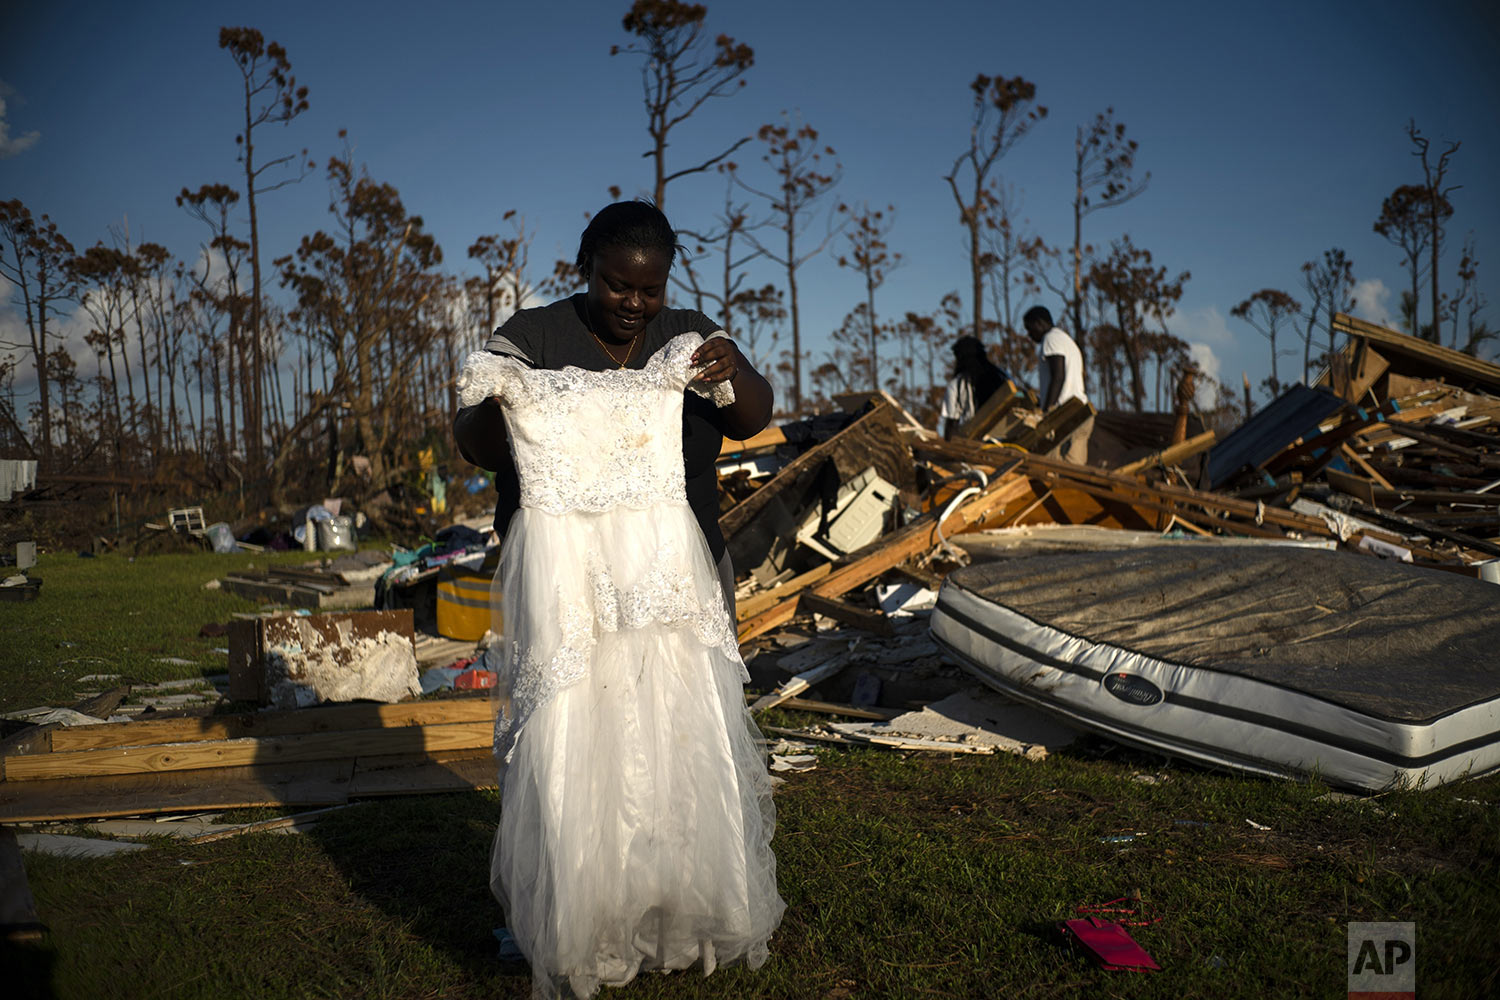 Synobia Reckley holds up the dress her niece wore as a flower girl at her wedding, as she goes through valuables in the rubble of her home destroyed one week ago by Hurricane Dorian in Rocky Creek East End, Grand Bahama, Bahamas, Sunday, Sept. 8, 2019.  Synobia, 25, married two days after Hurricane Mathew in 2016, which passed over her home without doing serious damage. (AP Photo/Ramon Espinosa)